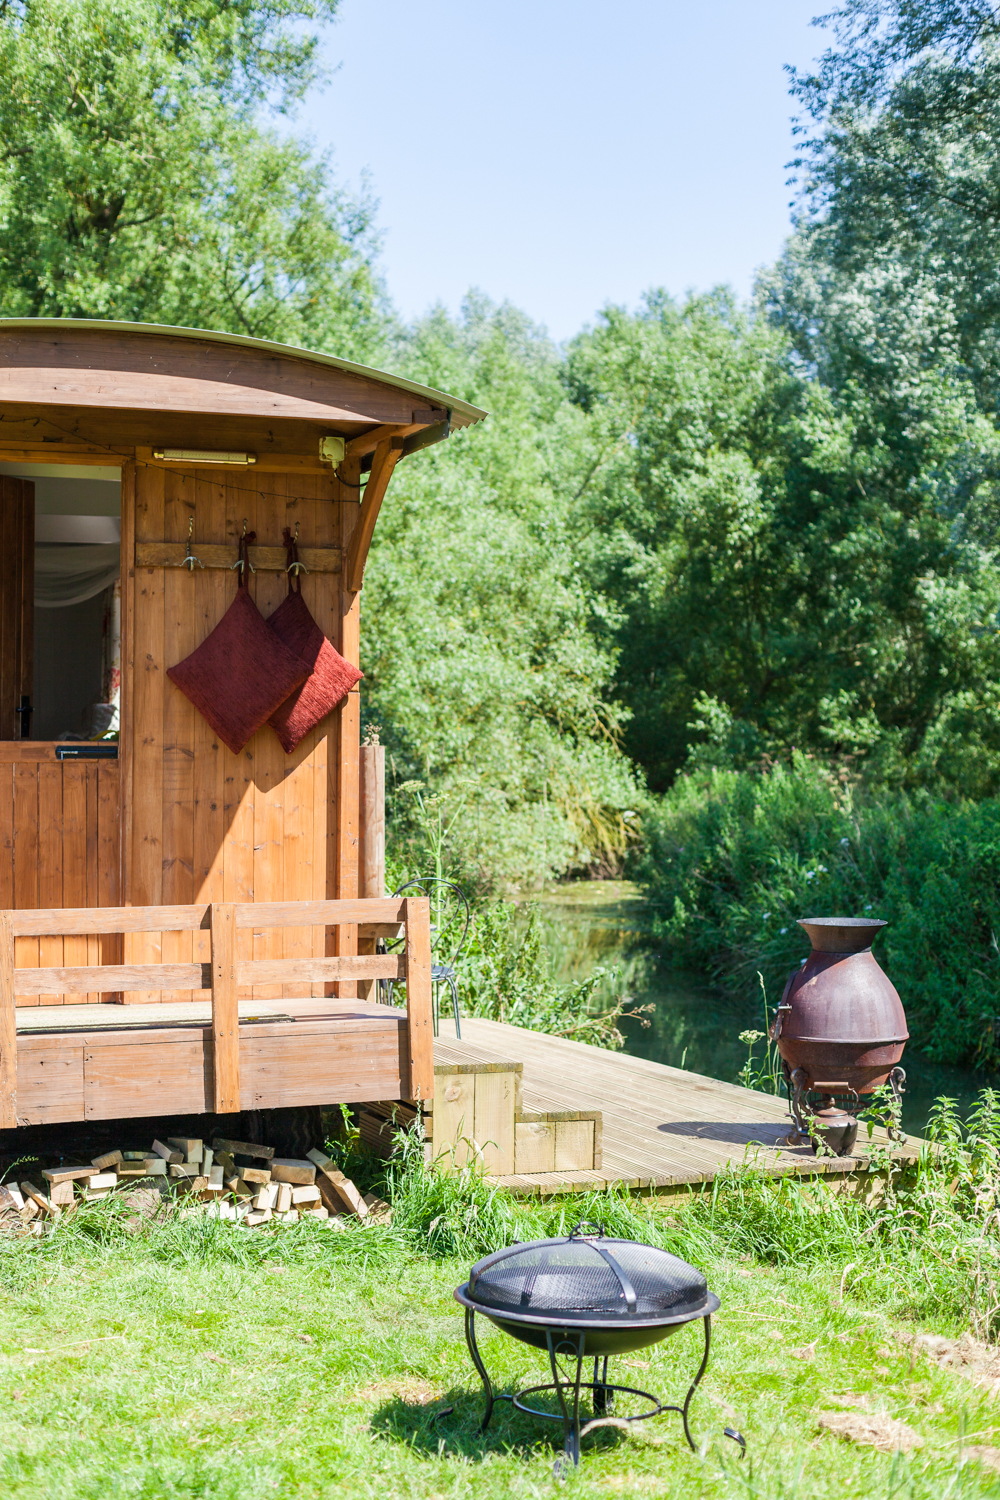 Showing the shepherds hut is right by the River Cherwell